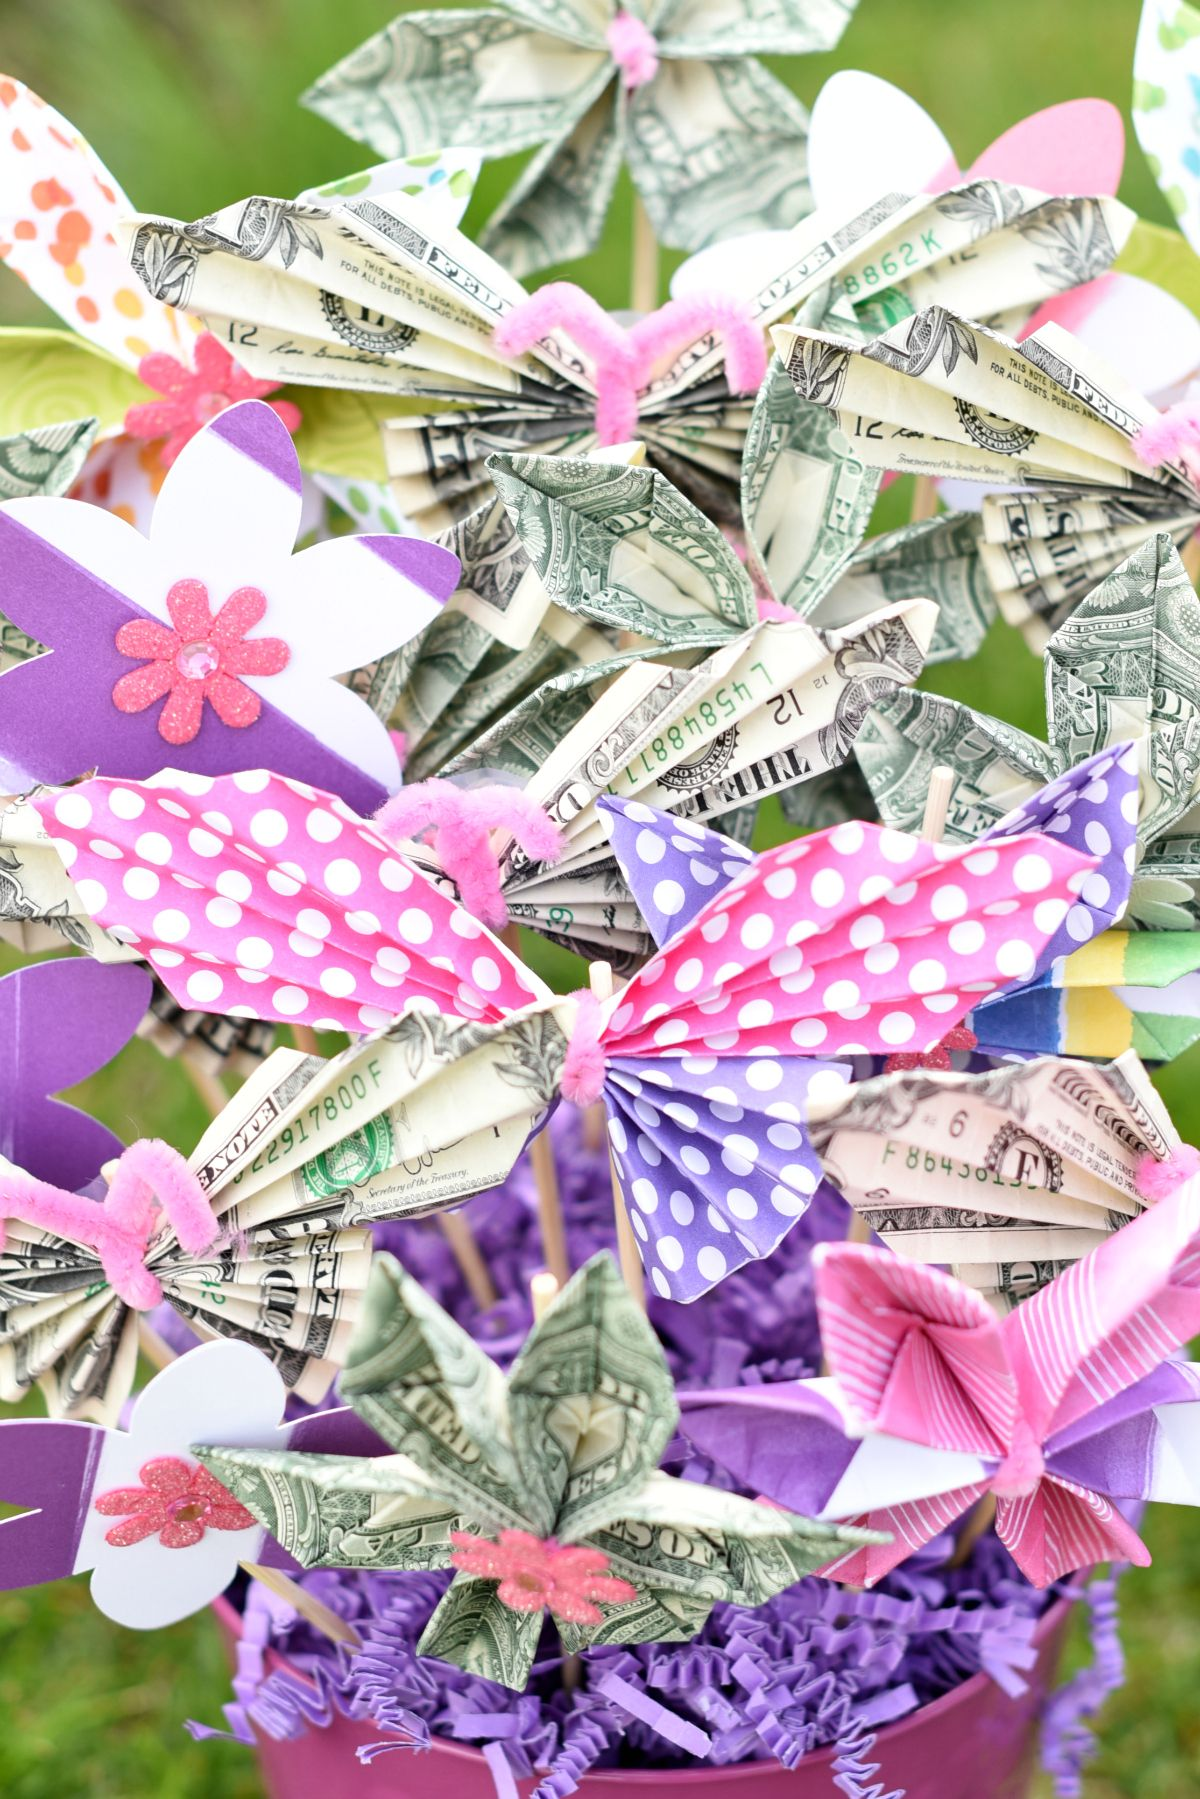 How to Make a Money Bouquet | Gifts | Money bouquet, Money ... - photo#36